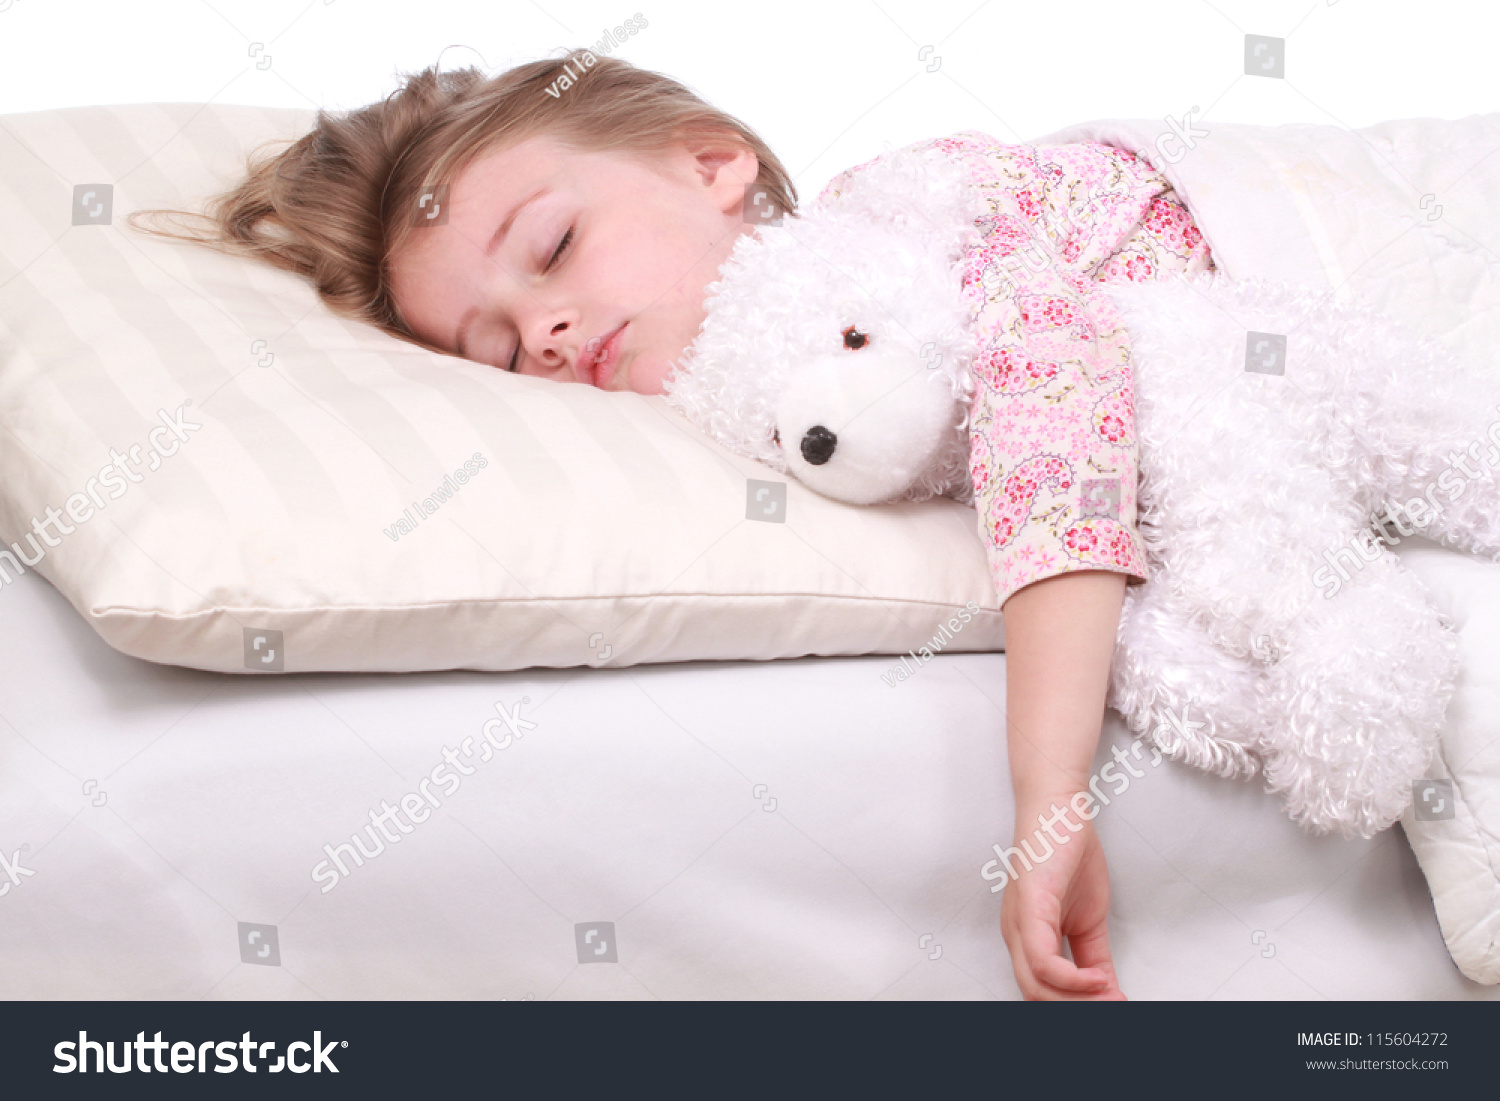 Little Girl Sleeping In Safety Car Seat Stock Photo, Picture And ...